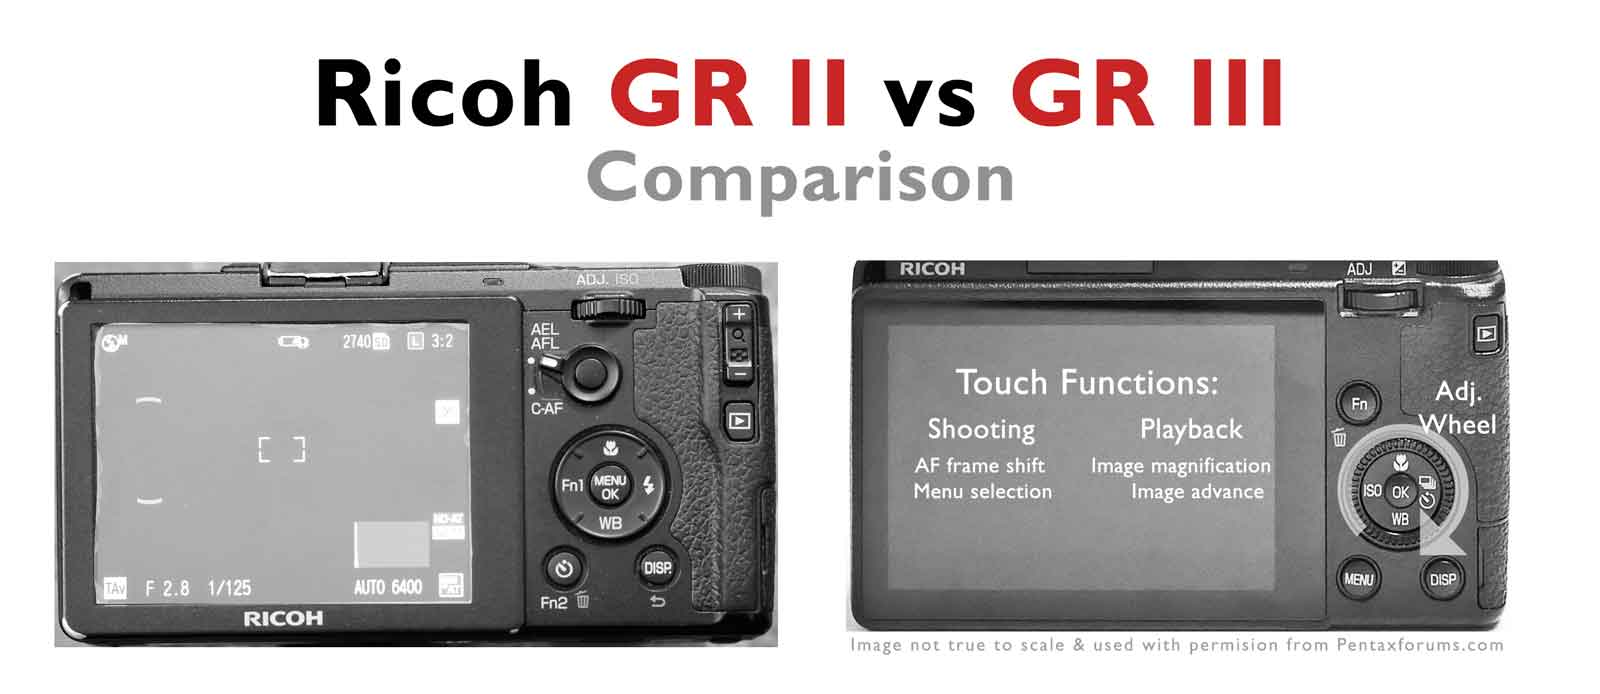 Ricoh GR II vs GR III Comparison